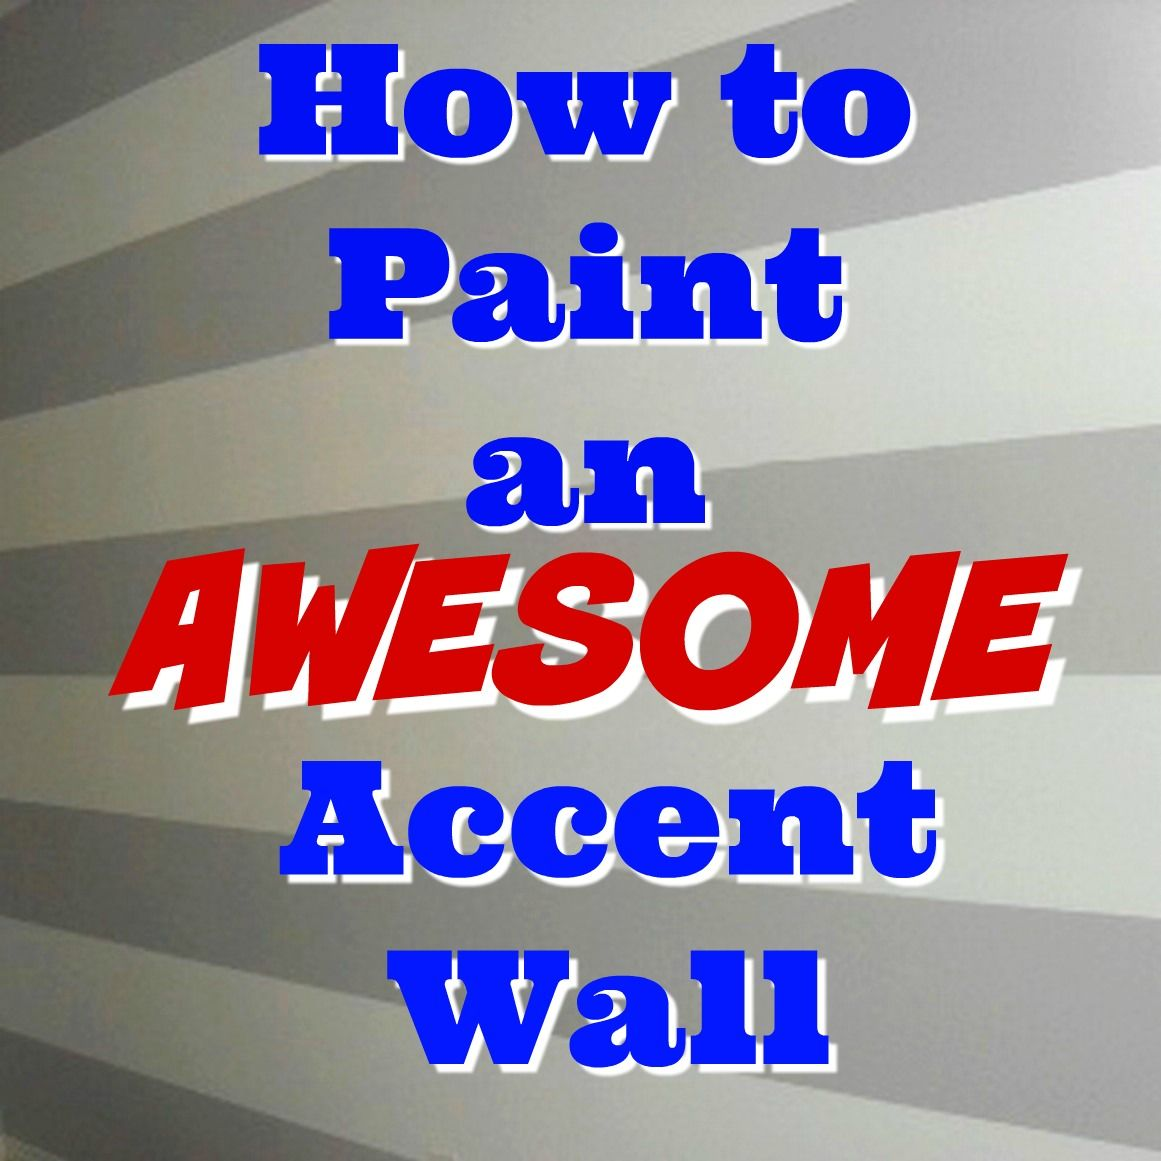 Expert Tips on How to Paint an Accent Wall | Accent wall ...